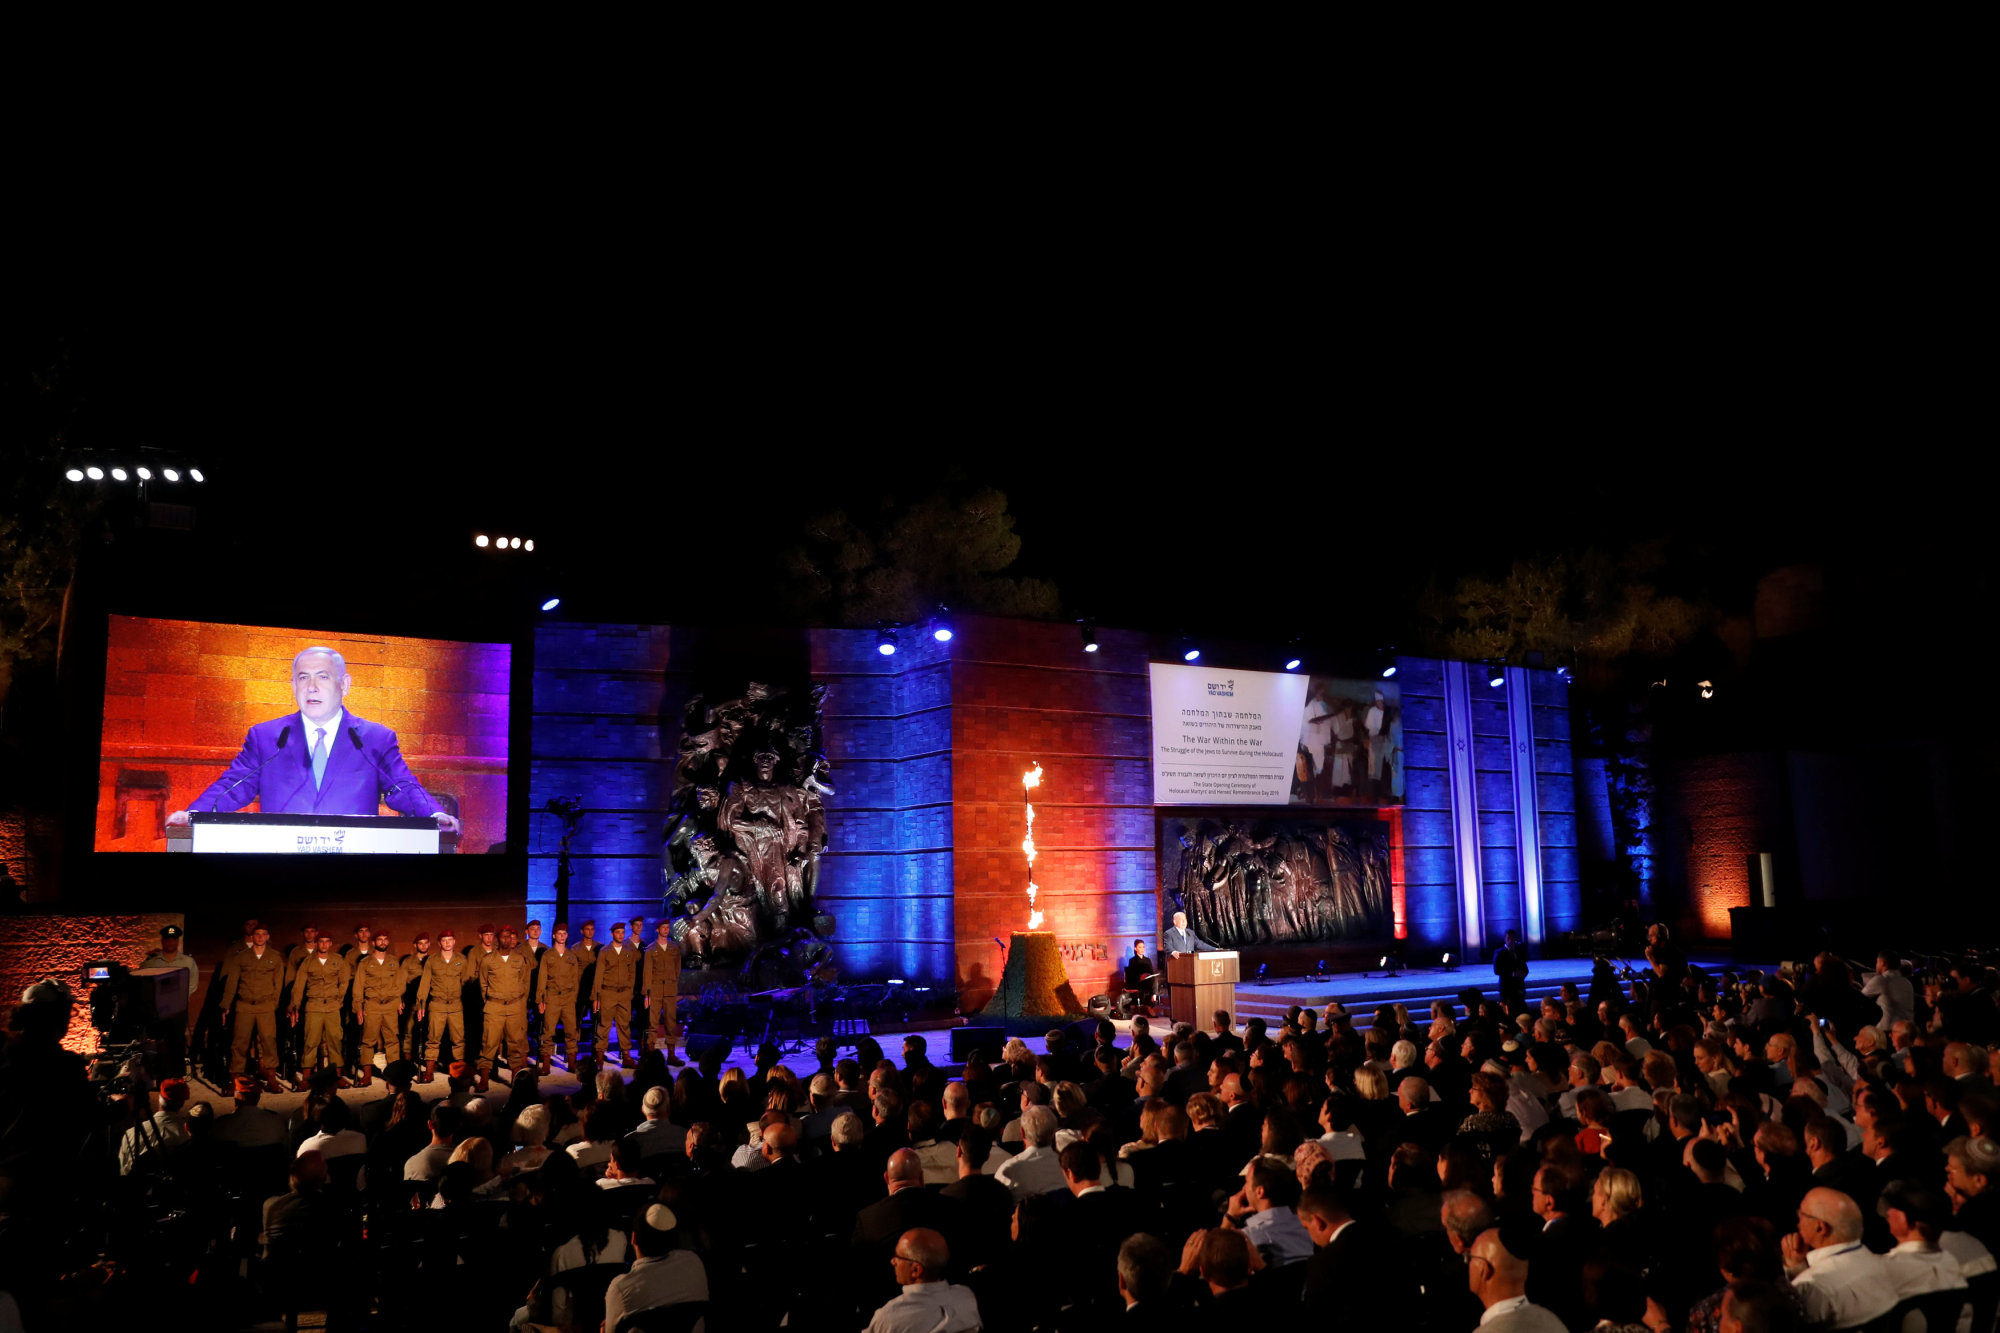 Israeli Prime Minister Benjamin Netanyahu speaks during the opening ceremony of the annual Israeli Holocaust Remembrance Day at the Yad Vashem World Holocaust Remembrance Center in Jerusalem WSednesday. | REUTERS